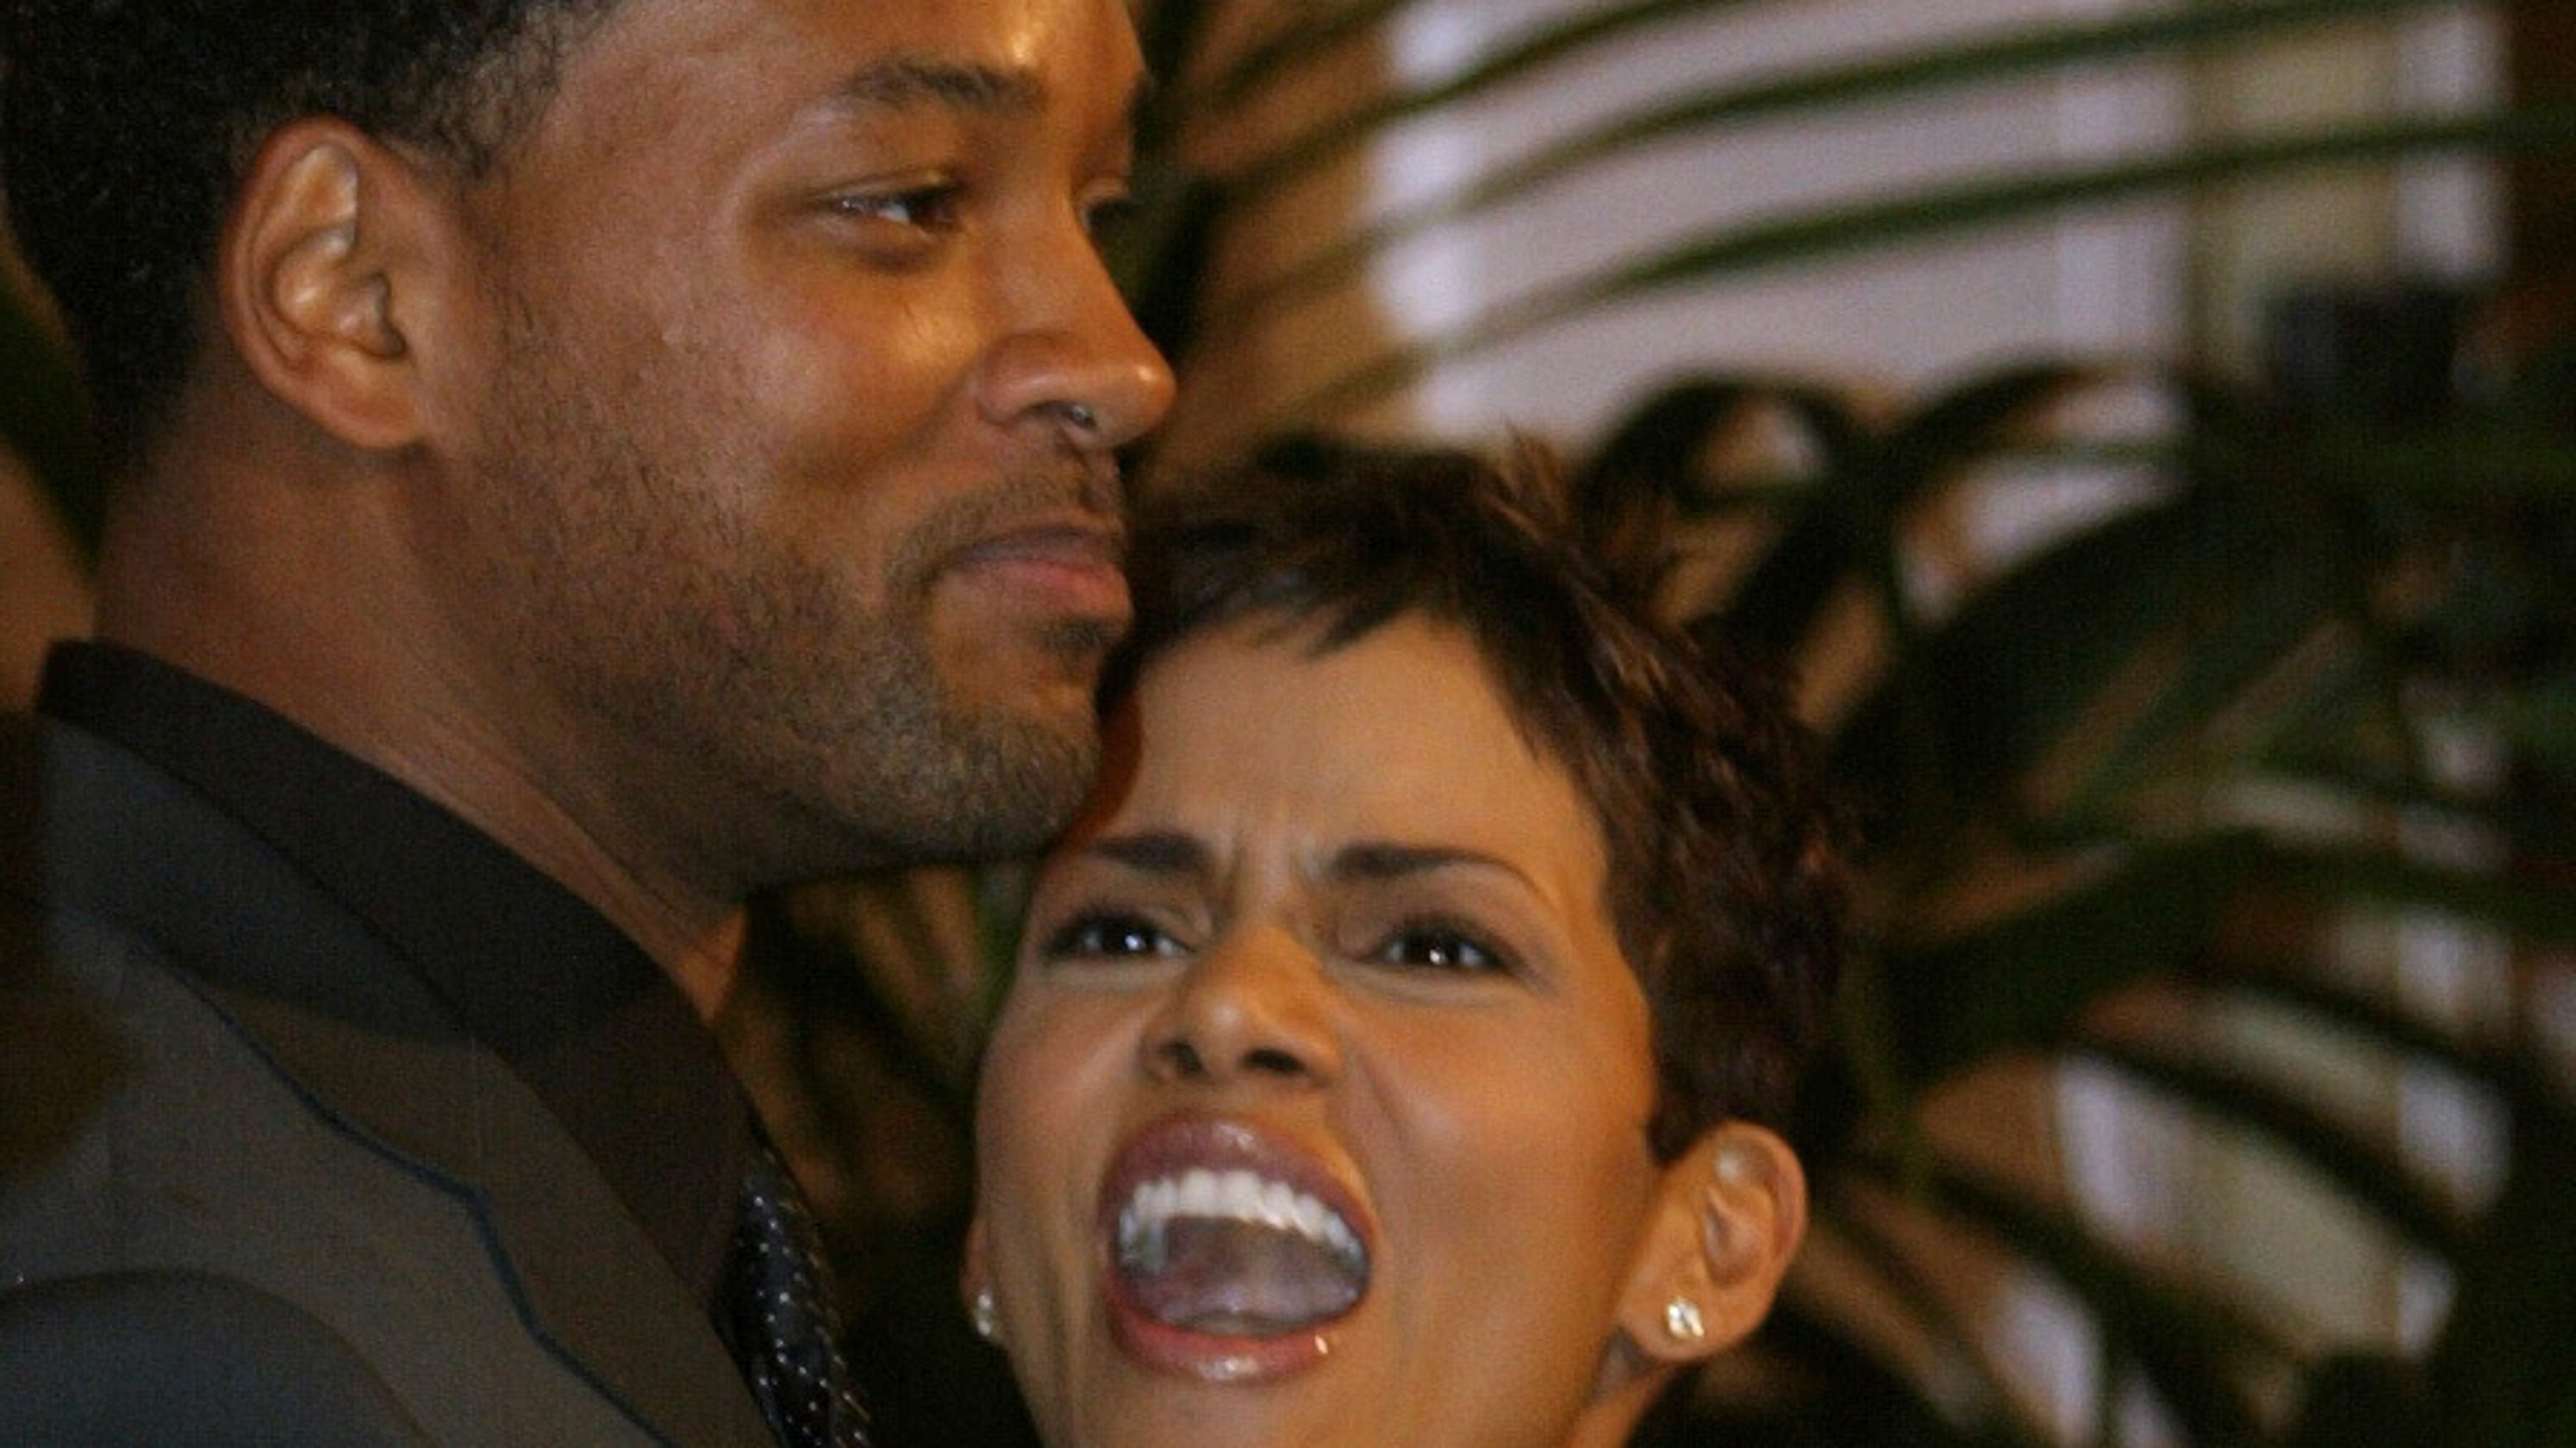 Will Smith and Halle Berry share hilarious mash-up photos of their faces